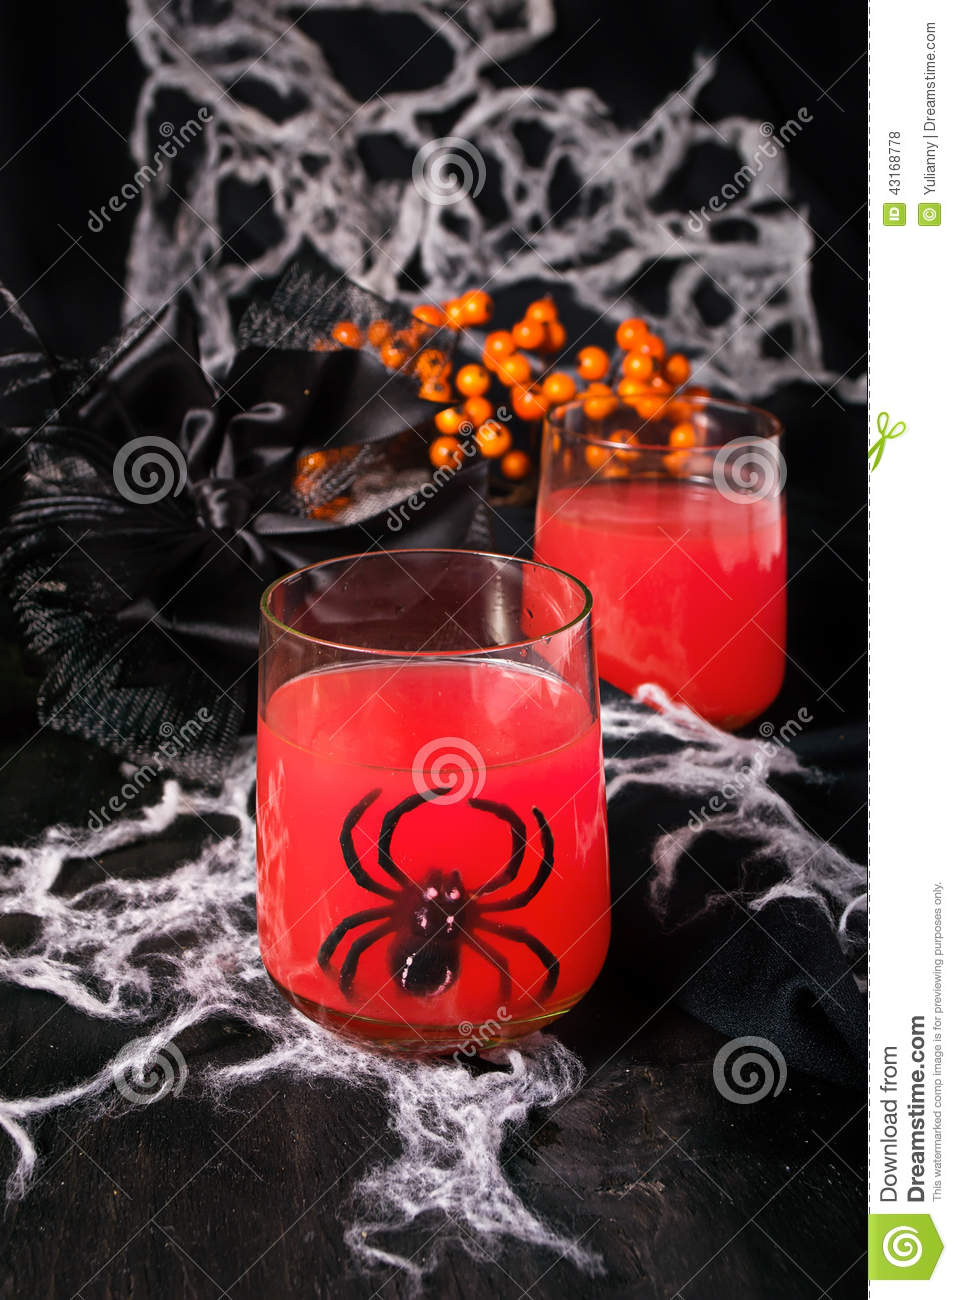 Spooky Halloween Cocktails For Party Royalty Free Stock